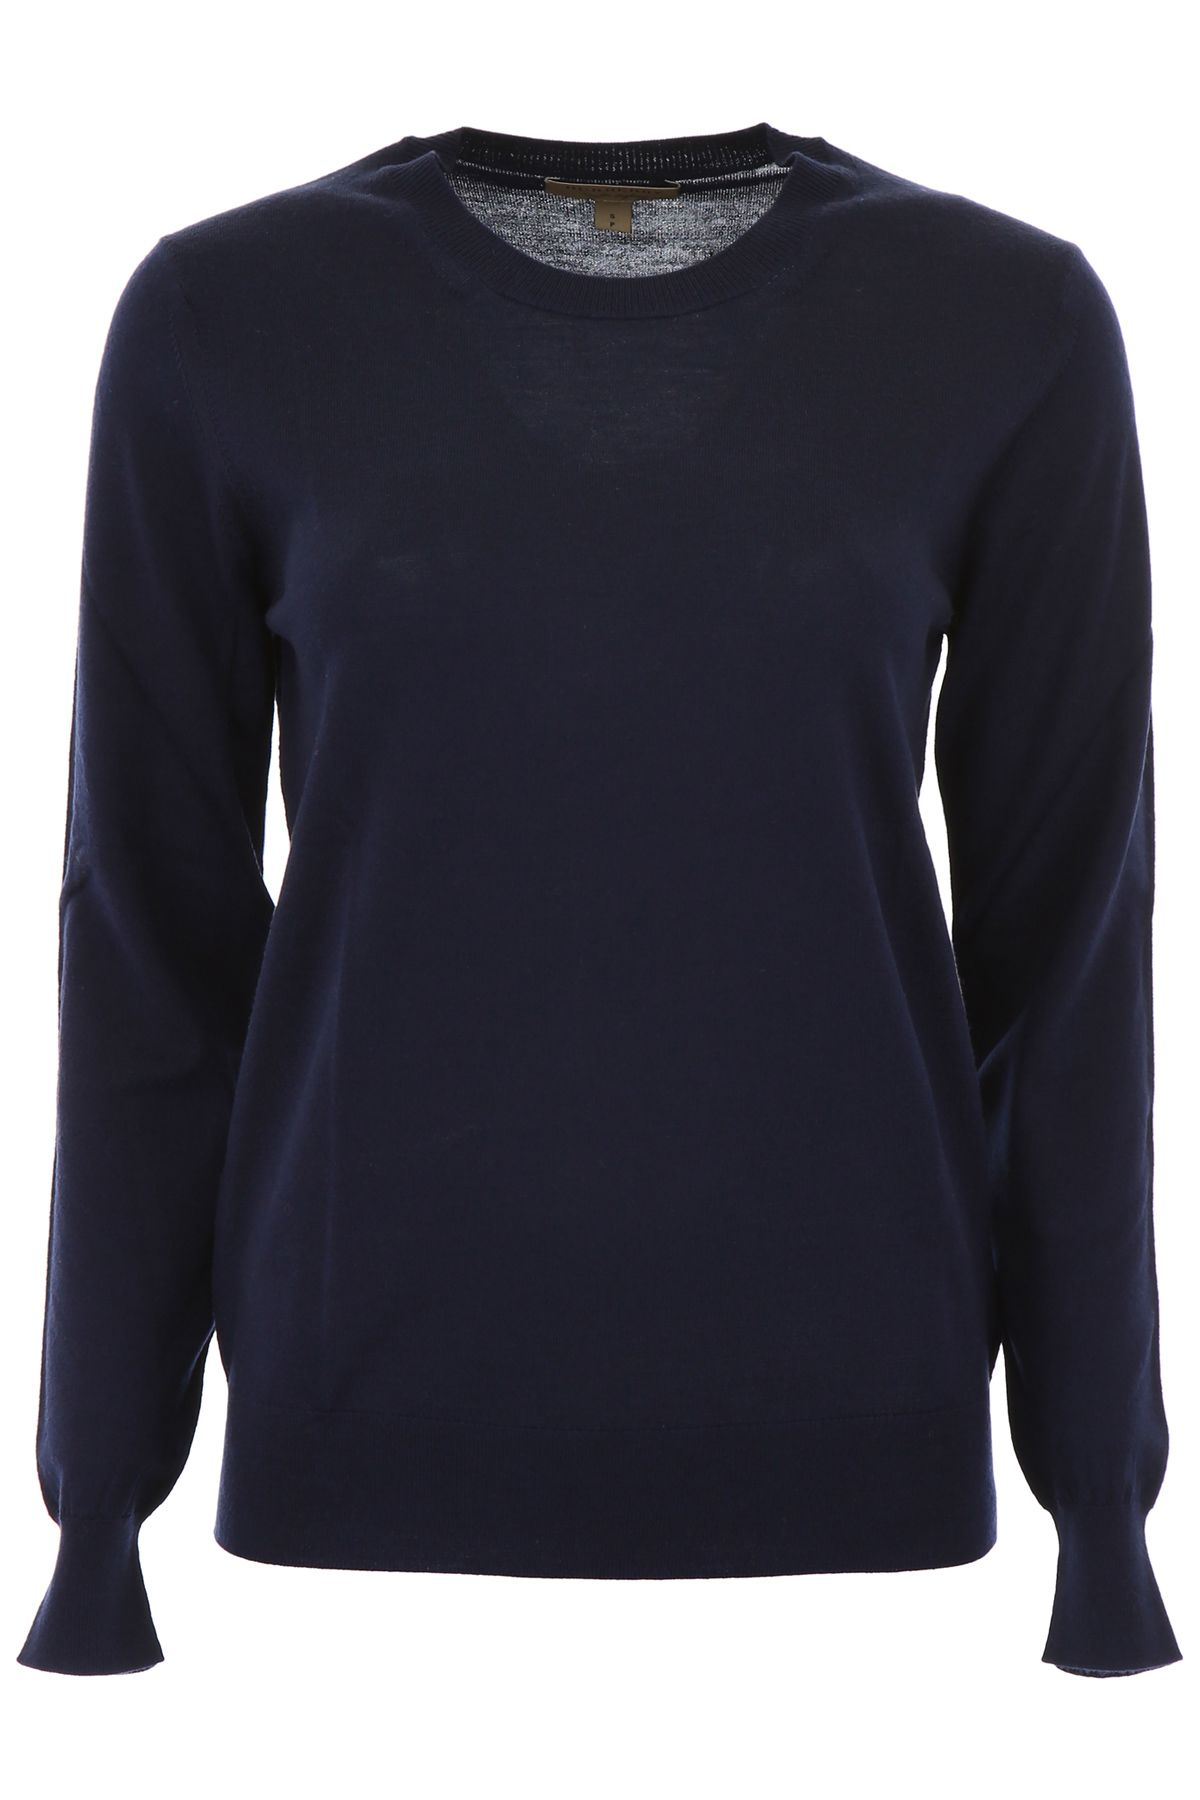 Burberry Wool Pullover With Tartan Details